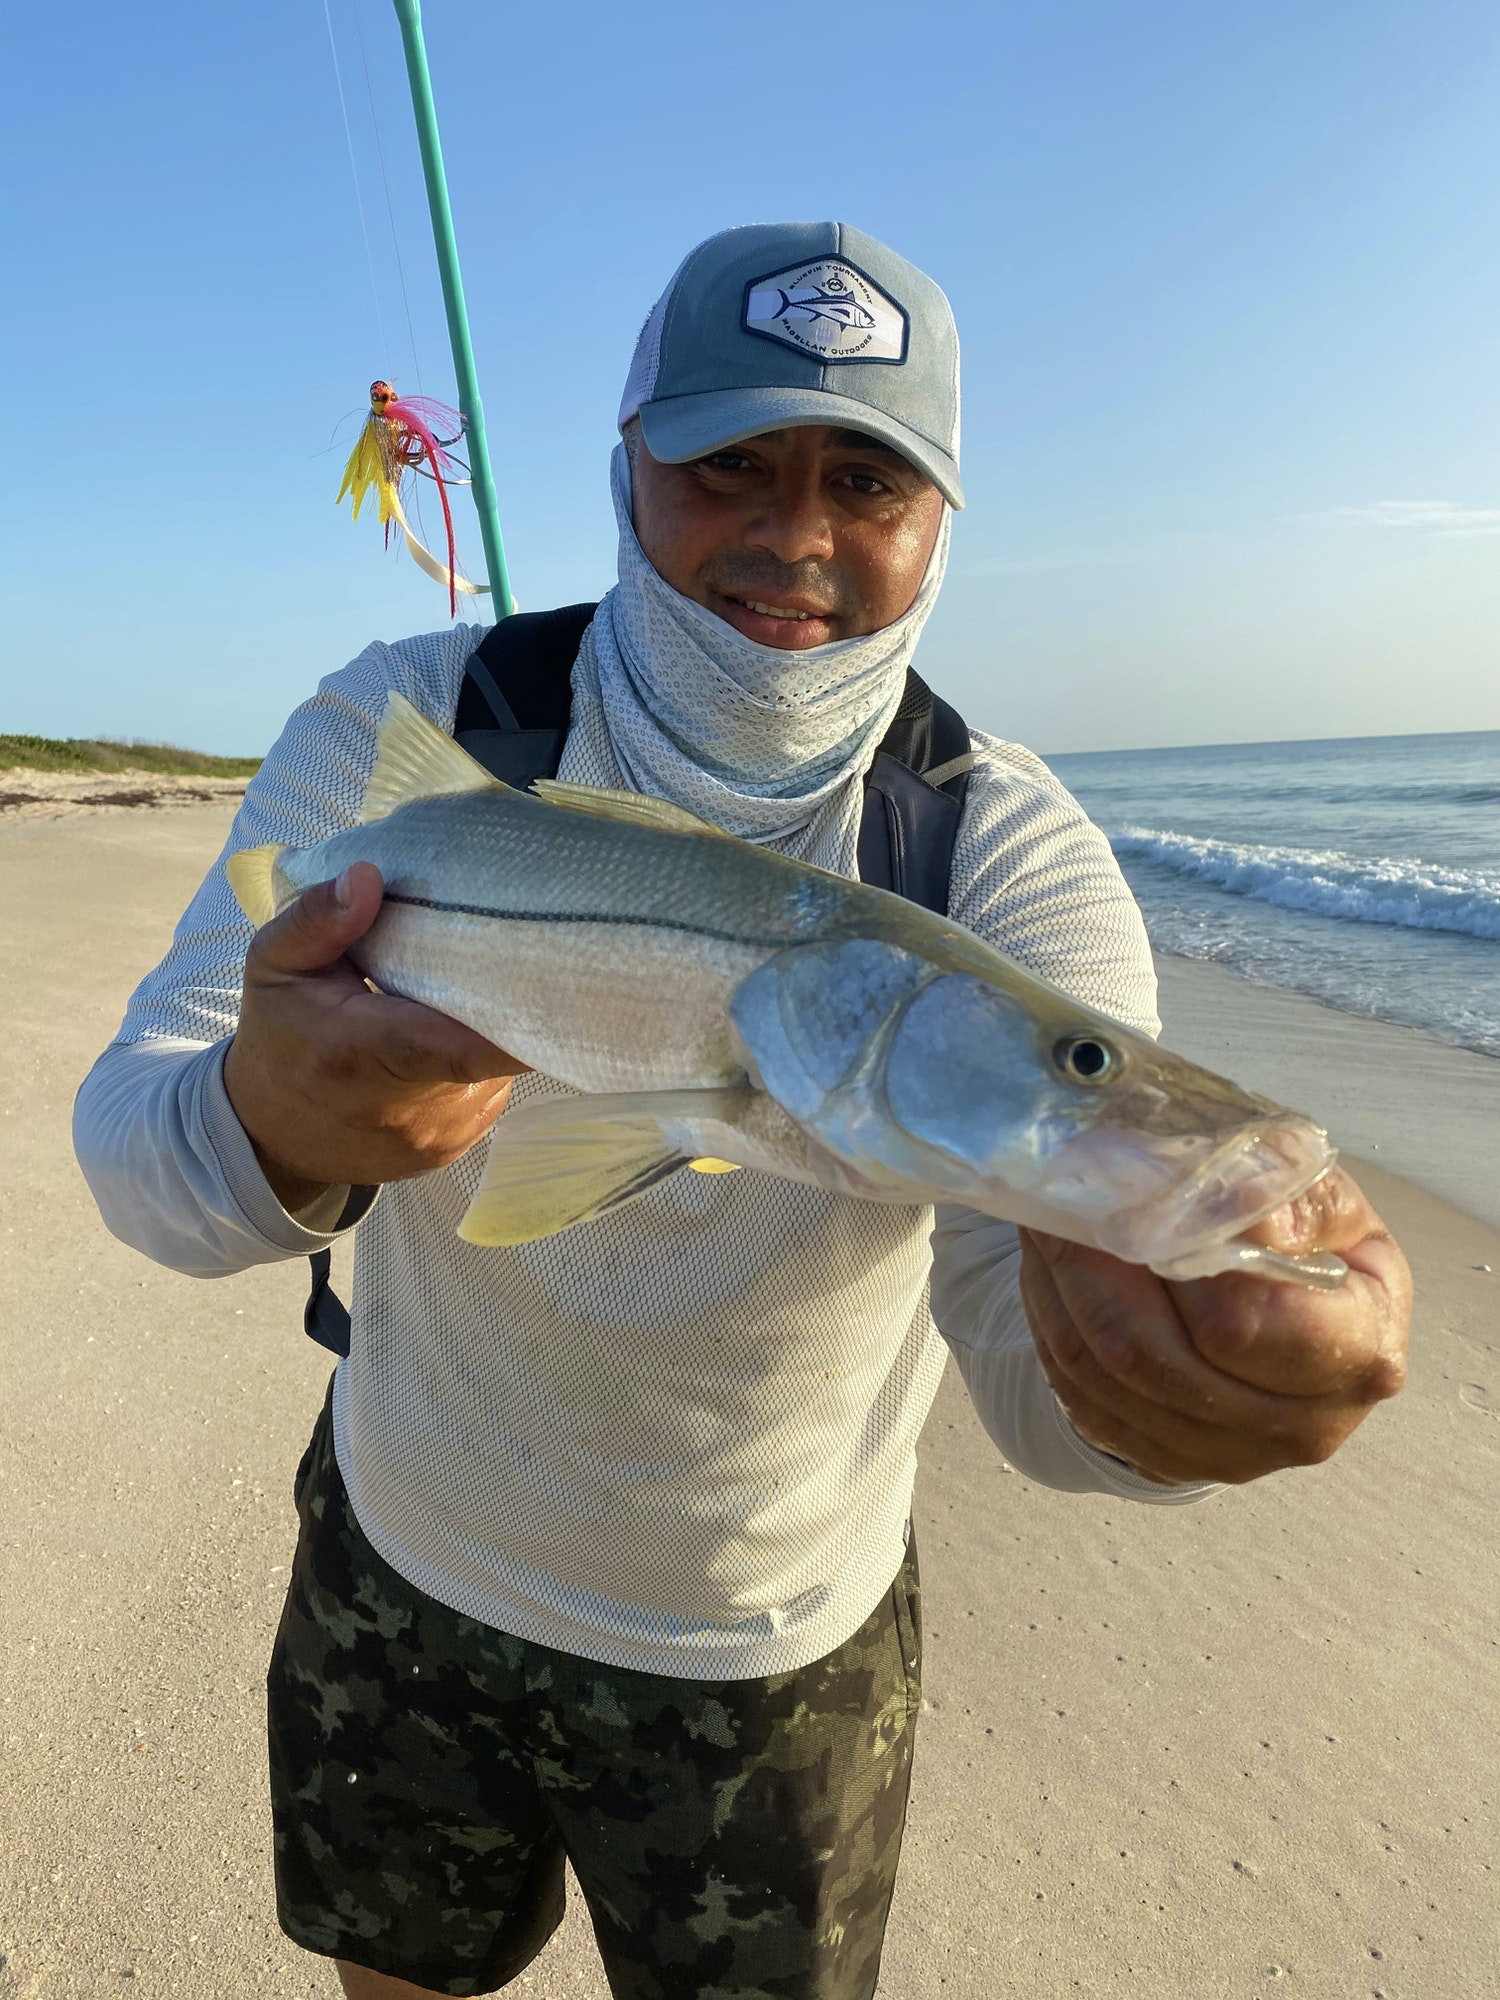 fisherman holding fish on beach